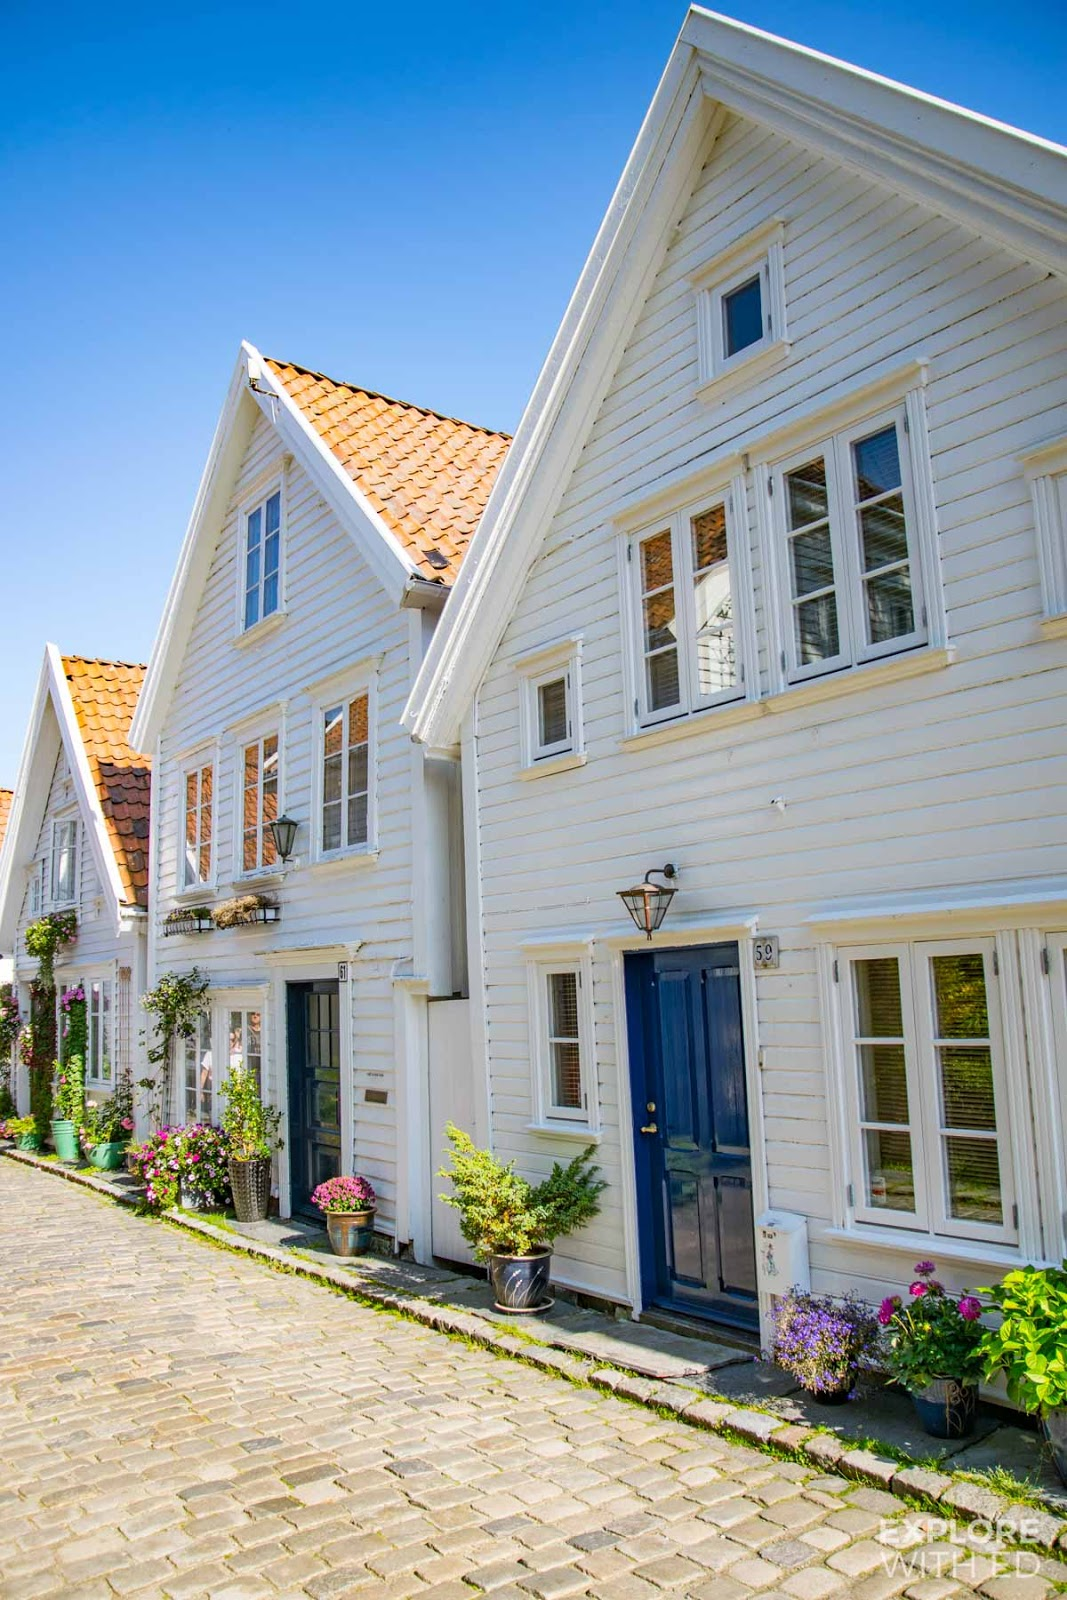 The pretty wooden houses of old town Stavanger